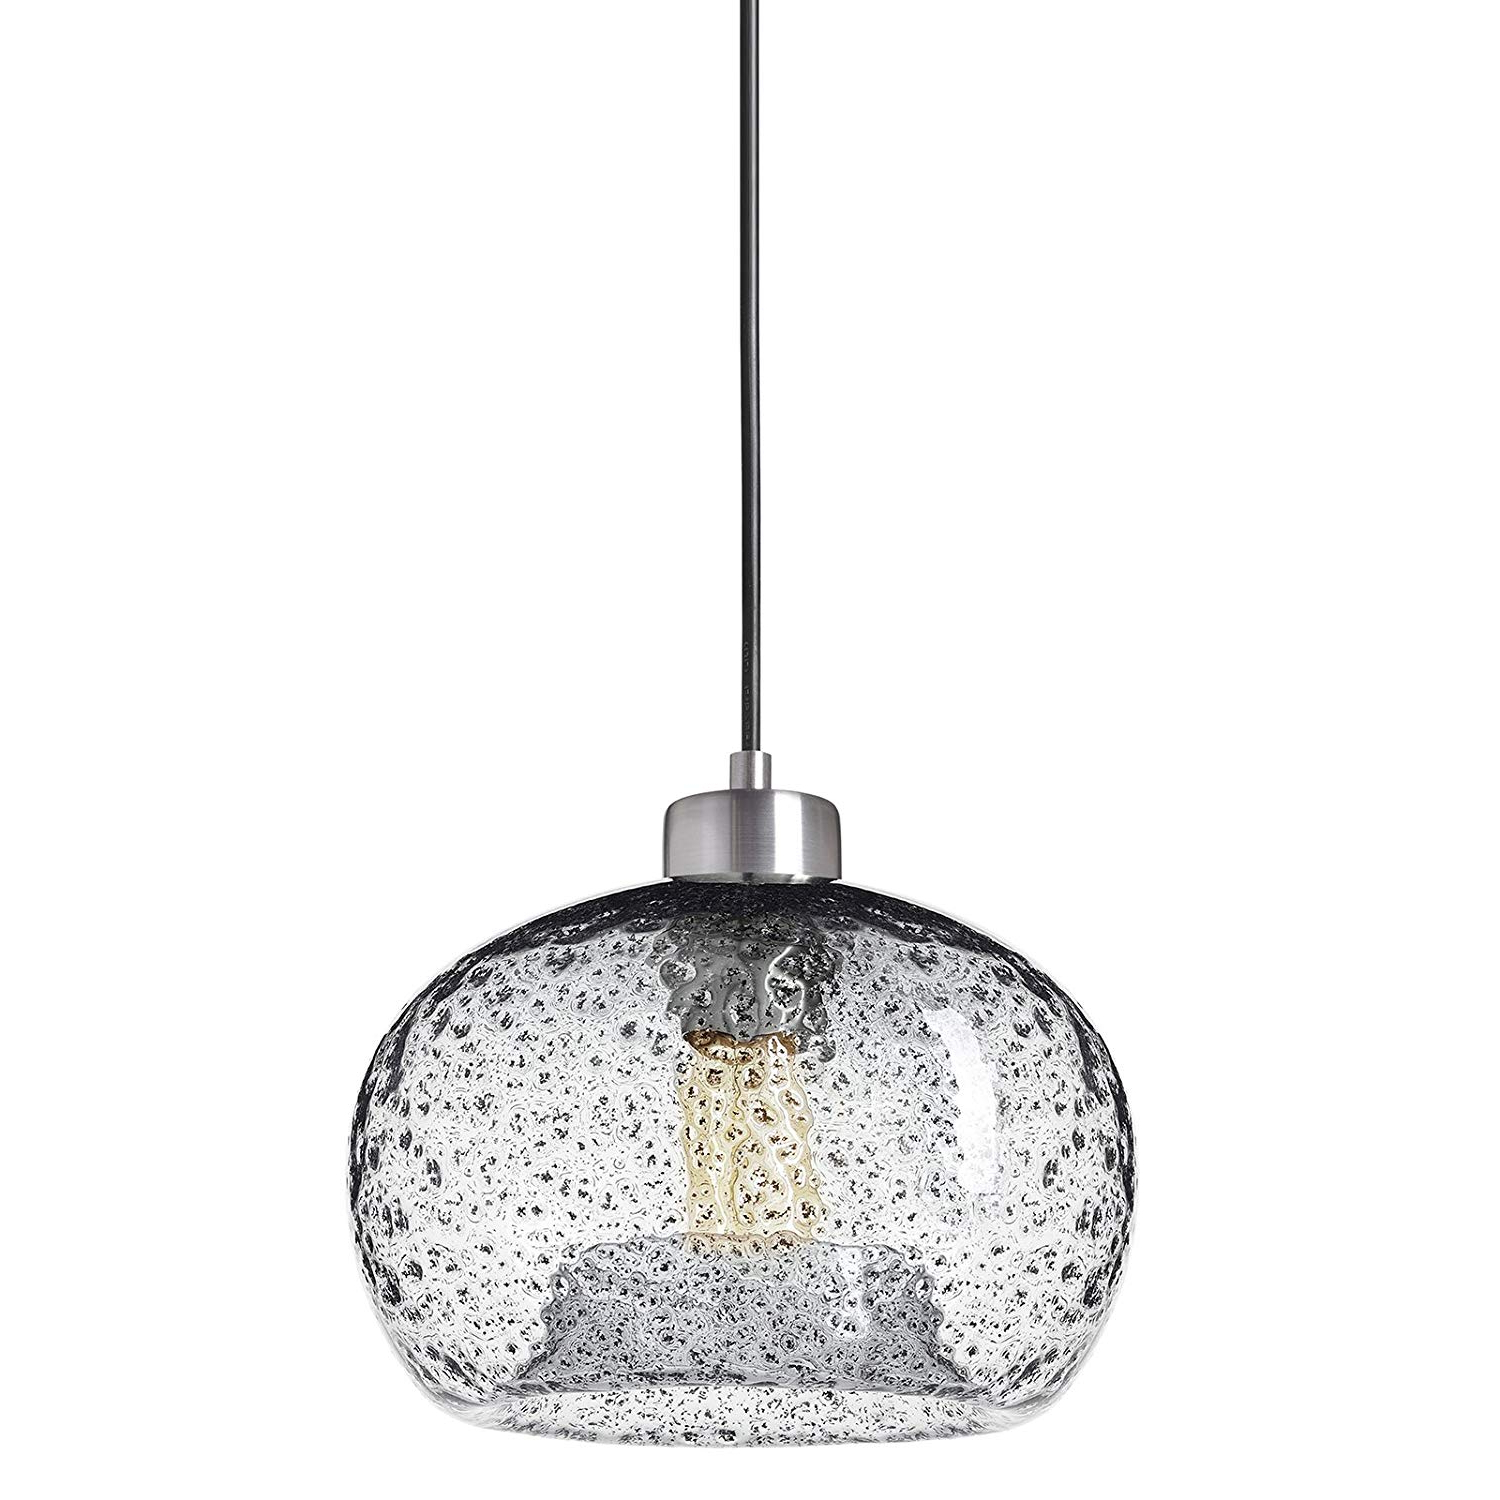 Casamotion Pendant Light Handblown Glass Drop Ceiling Lights, Rustic  Hanging Light Seeded Glass With Black Sand Powder (Brushed Nickel, Clear) Regarding Well Known Granville 2 Light Single Dome Pendants (View 23 of 25)